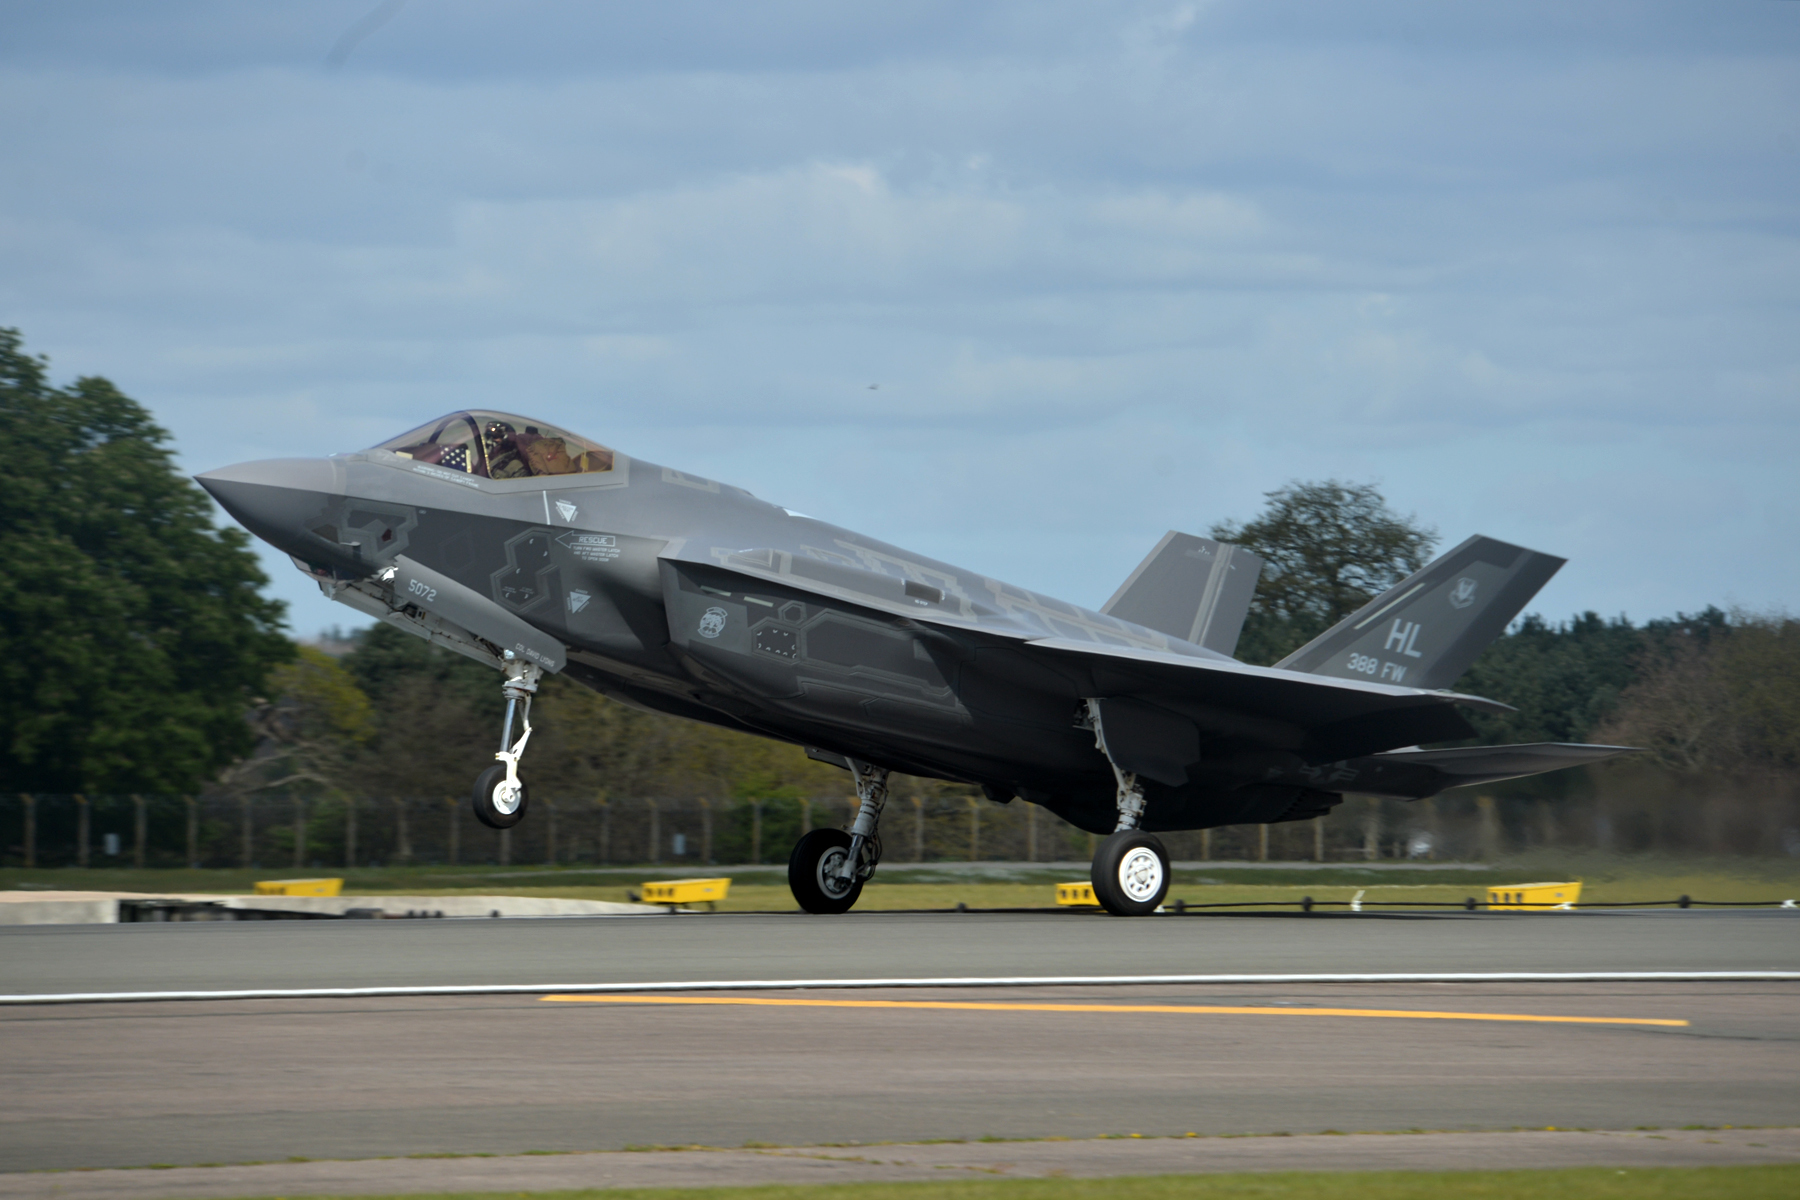 An F-35A Lightning II from the 34th Fighter Squadron at Hill Air Force Base, Utah, lands at Royal Air Force Lakenheath, England, April 15, 2017. The aircraft arrival marks the first F-35A fighter training deployment  to the U.S. European Command area of responsibility or any overseas location as a flying training deployment. (U.S. Air Force photo/Master Sgt. Eric Burks)